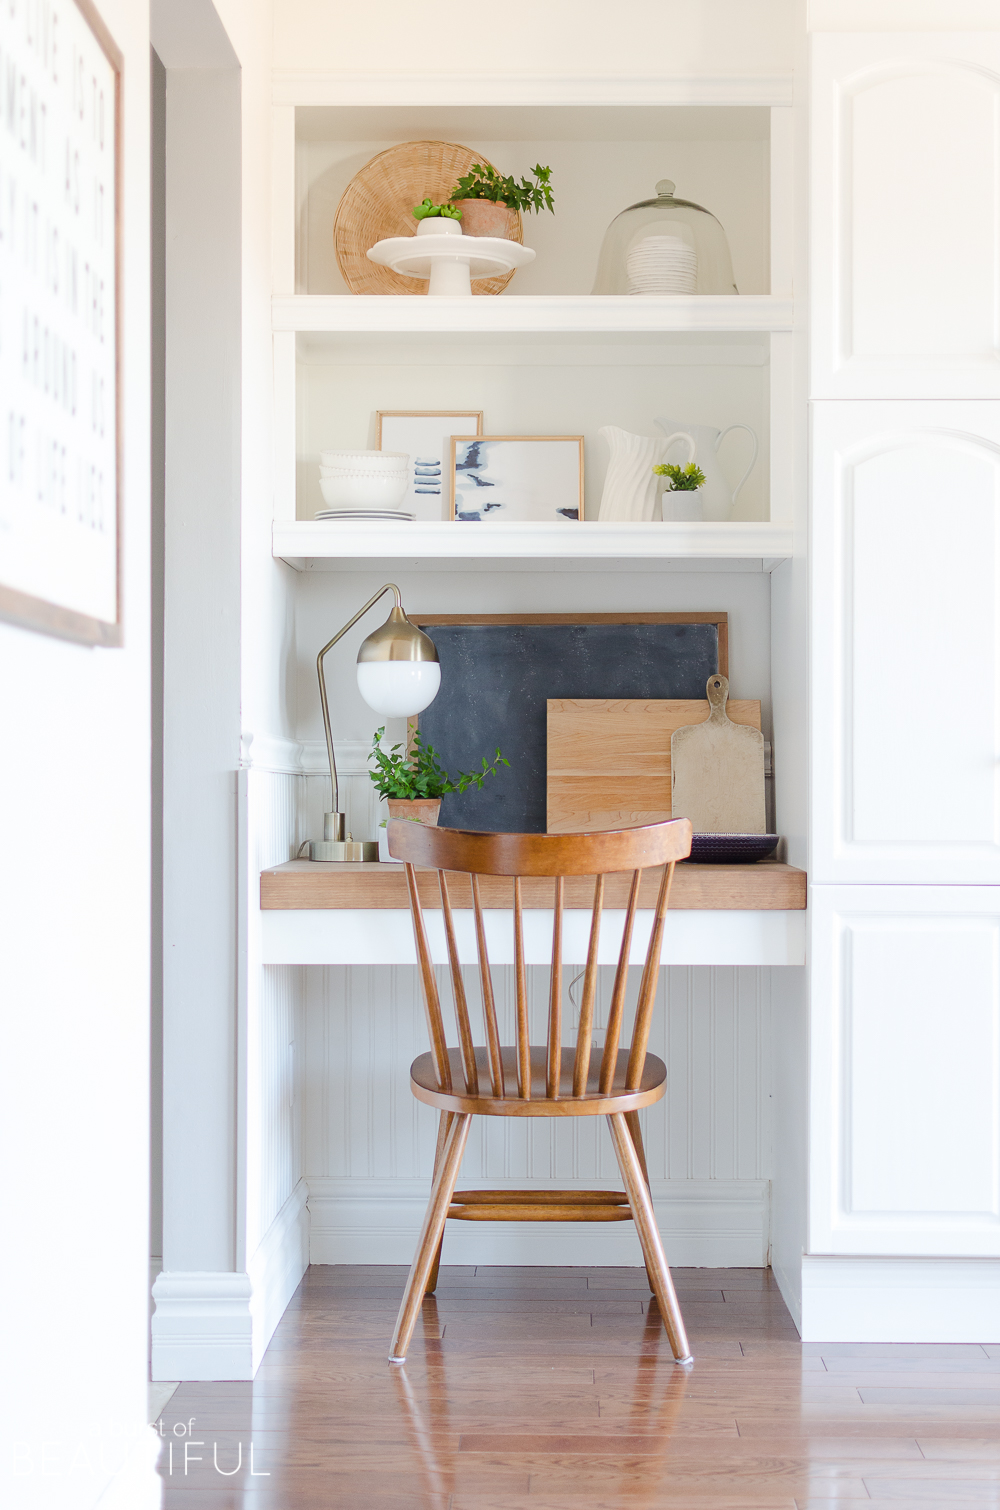 A small kitchen nook is decorated for spring with these simple and easy-to-follow steps for styling open shelving.